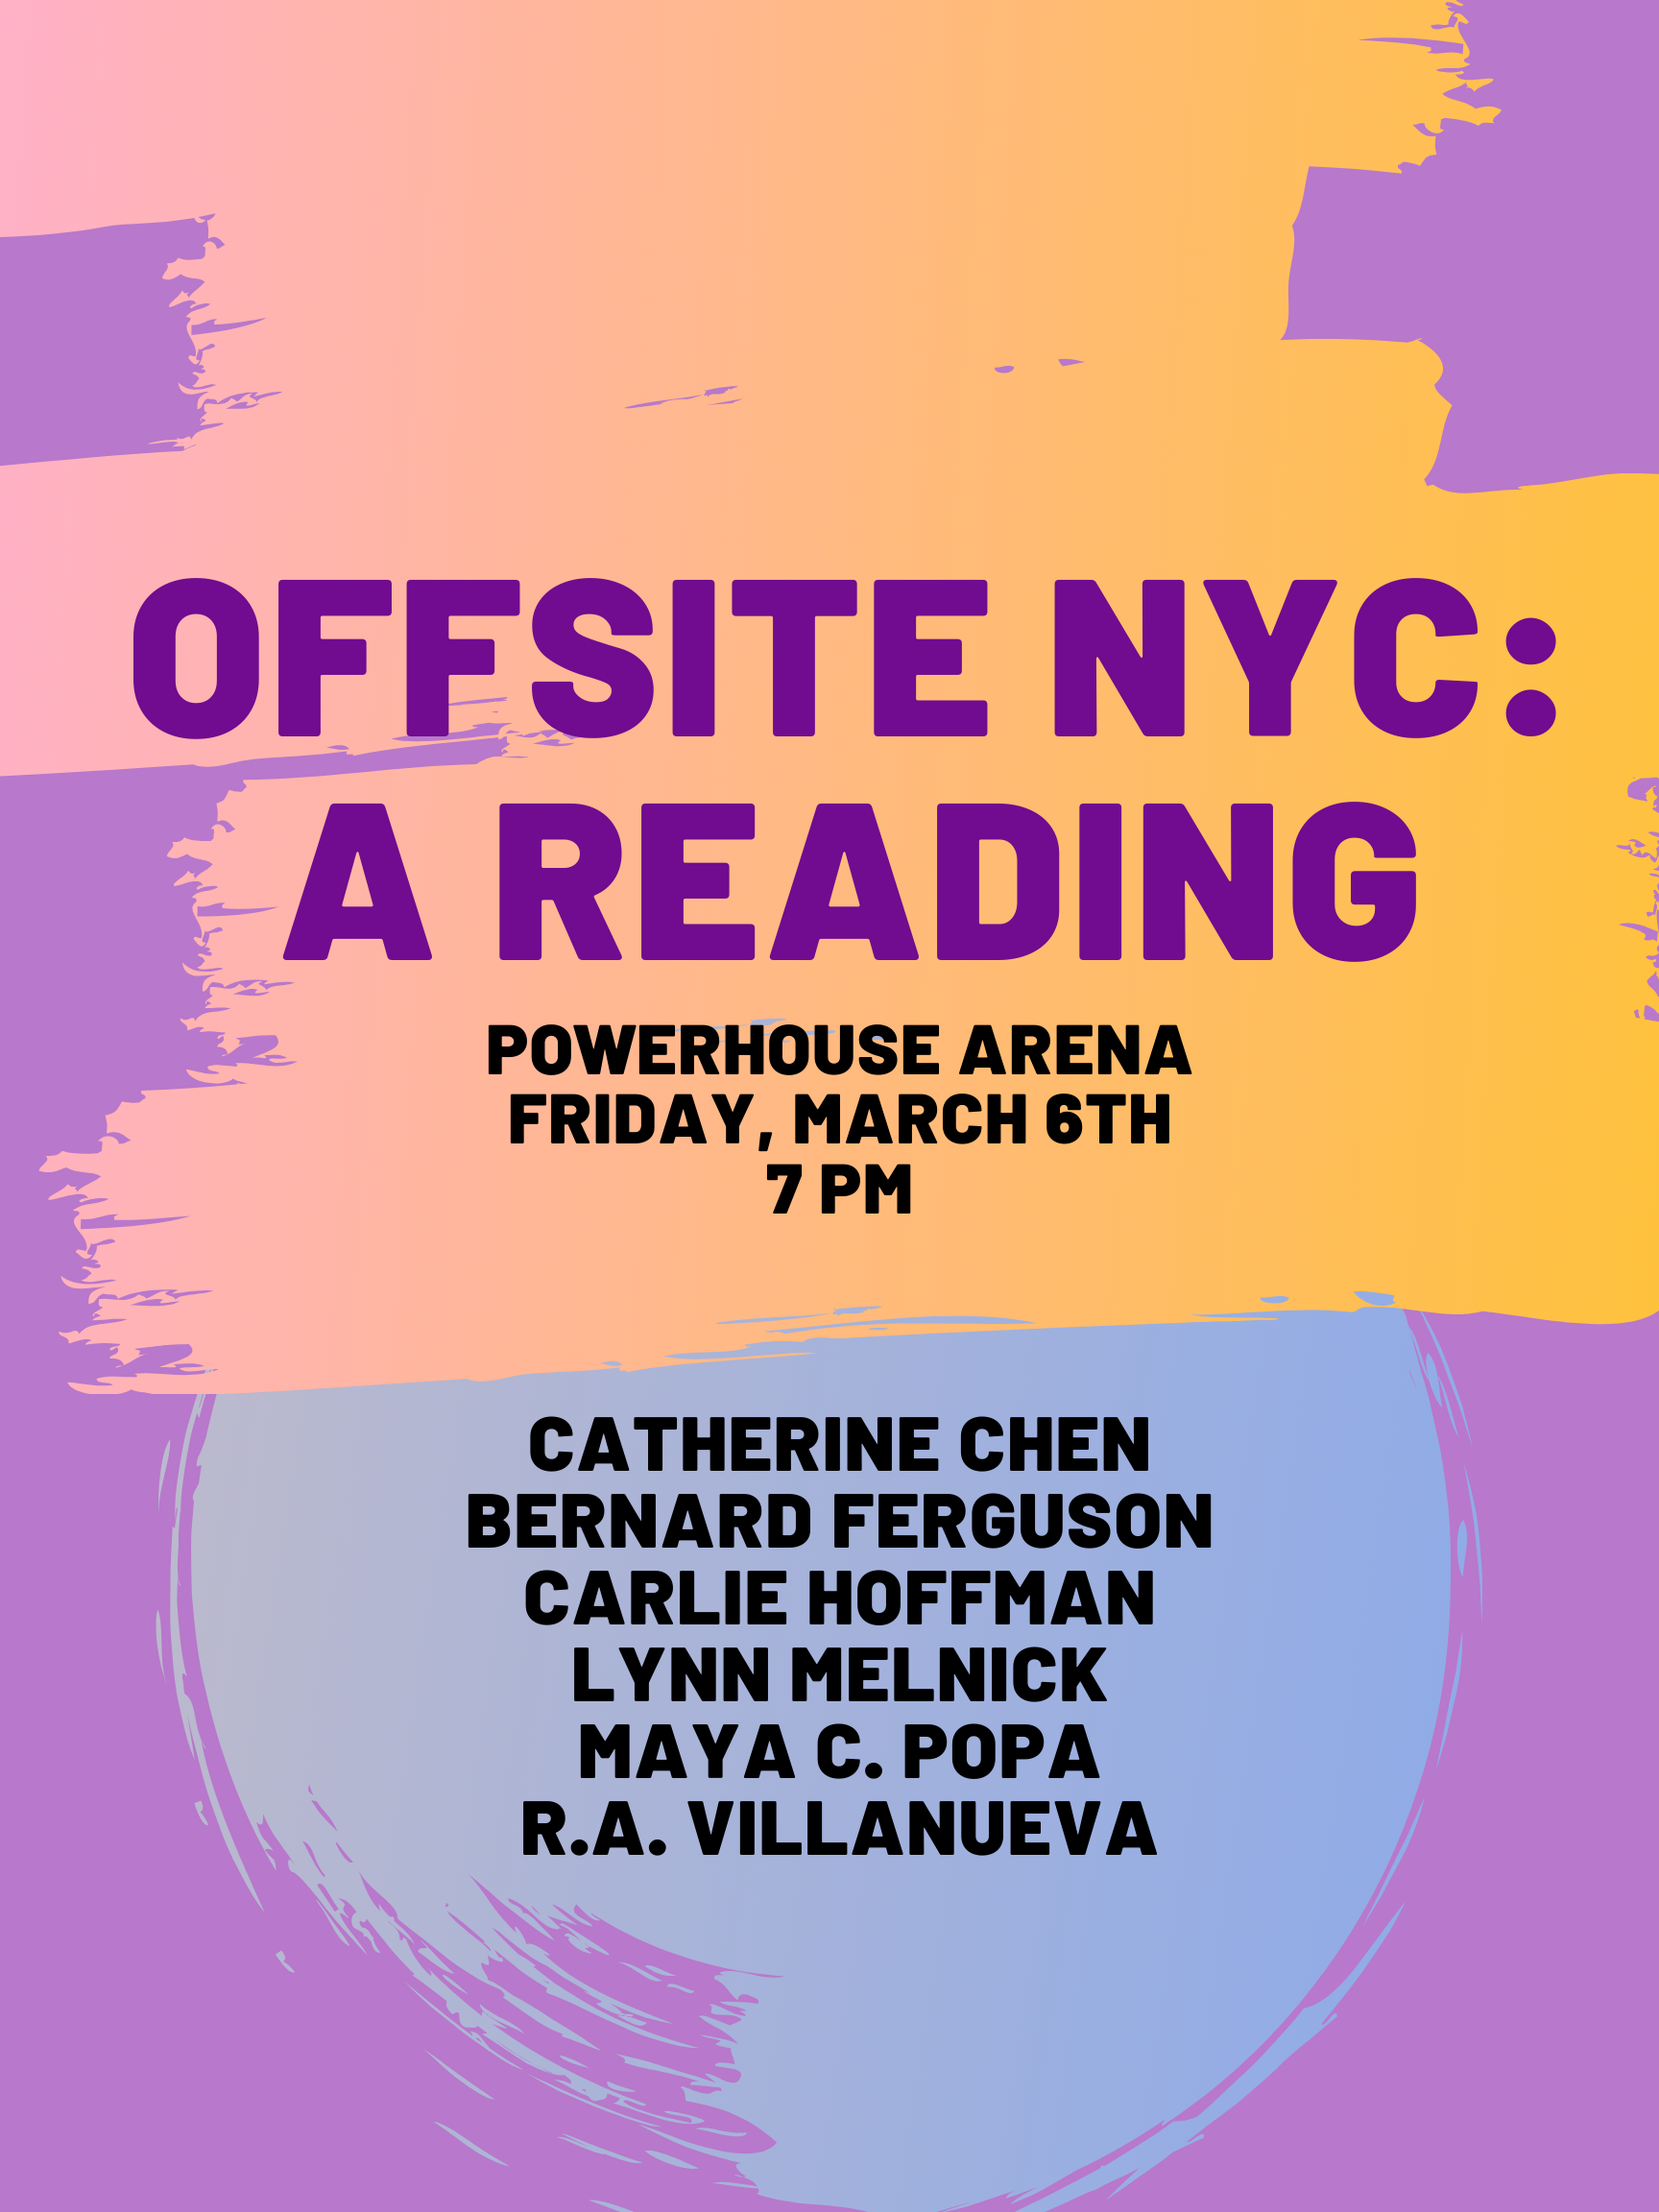 Offsite NYC: A Reading